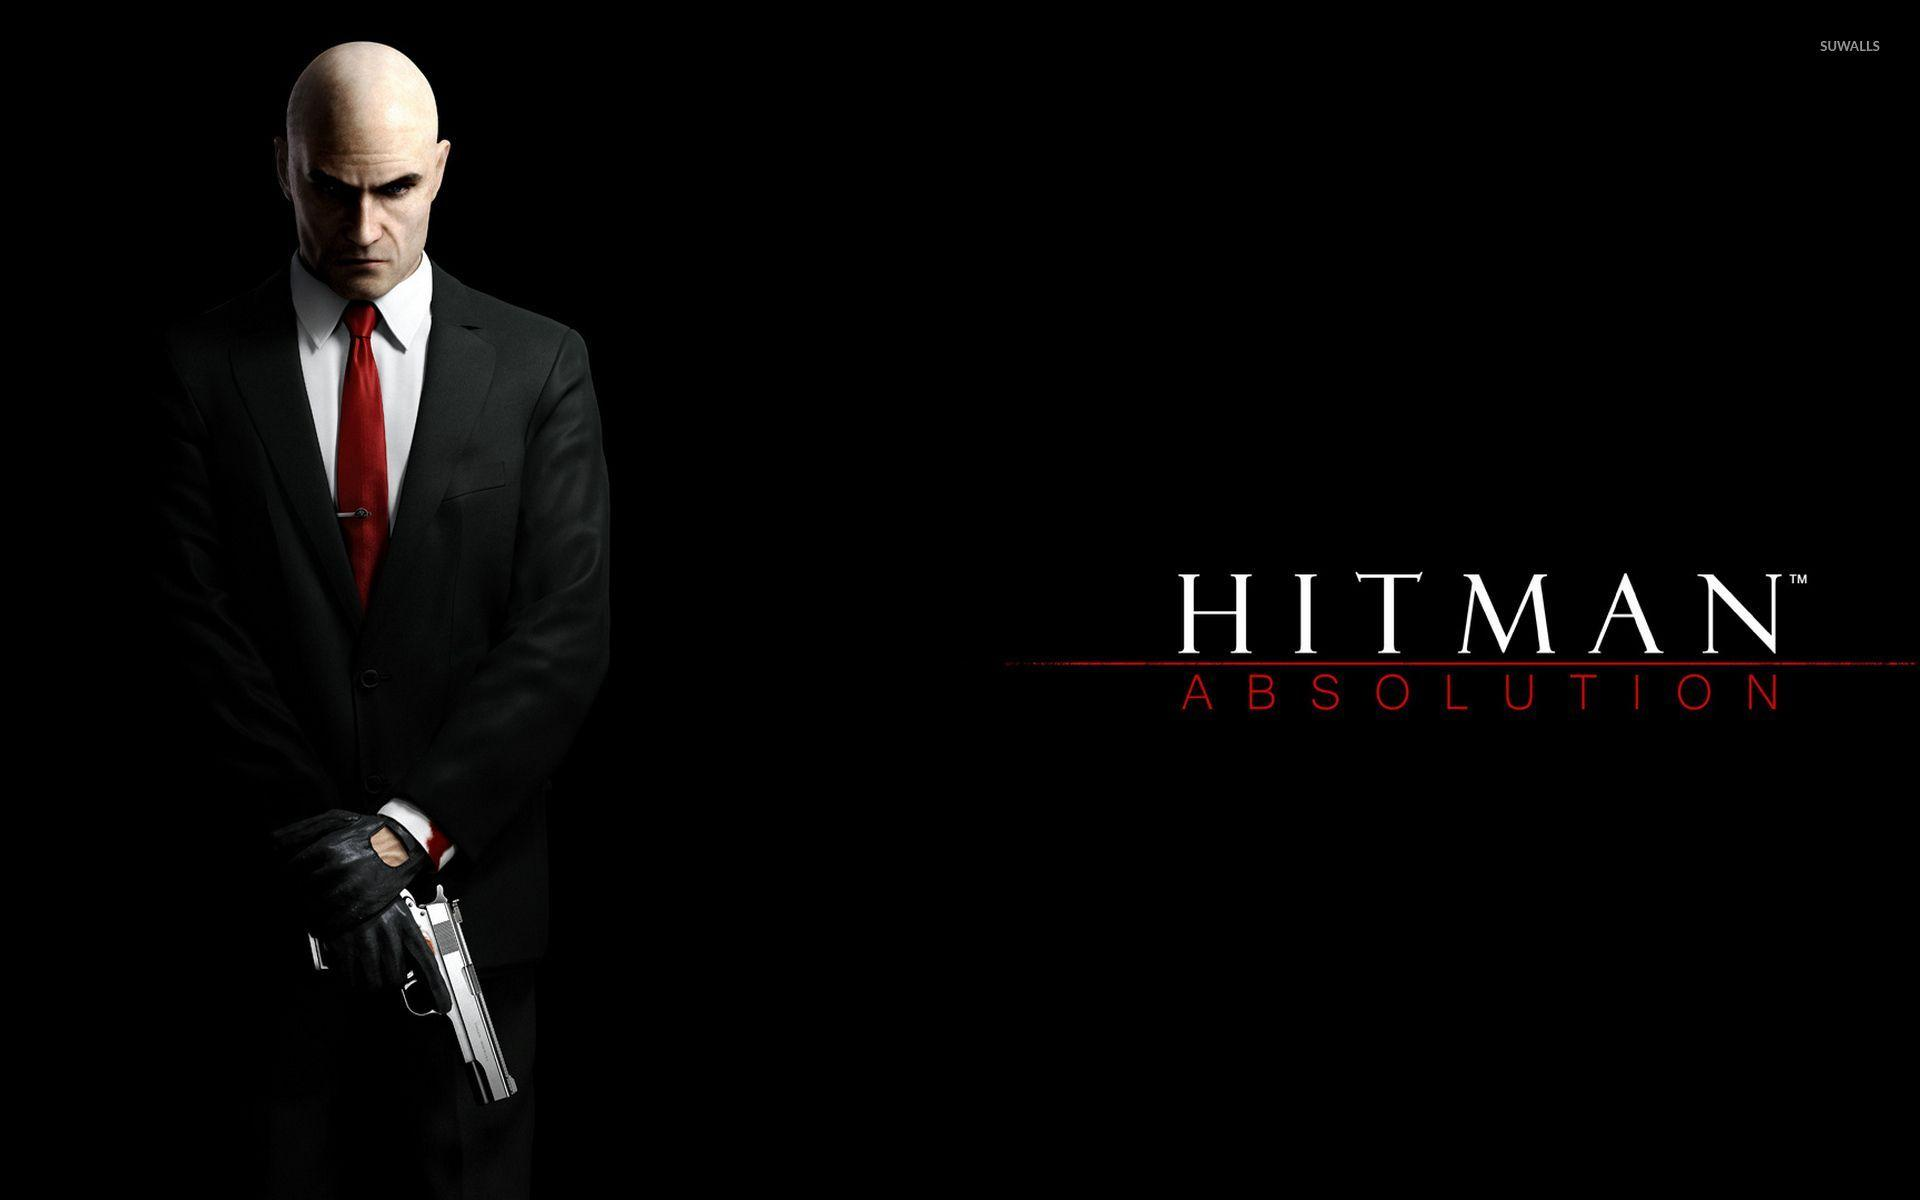 hitman absolution wallpapers 1920x1080 - wallpaper cave